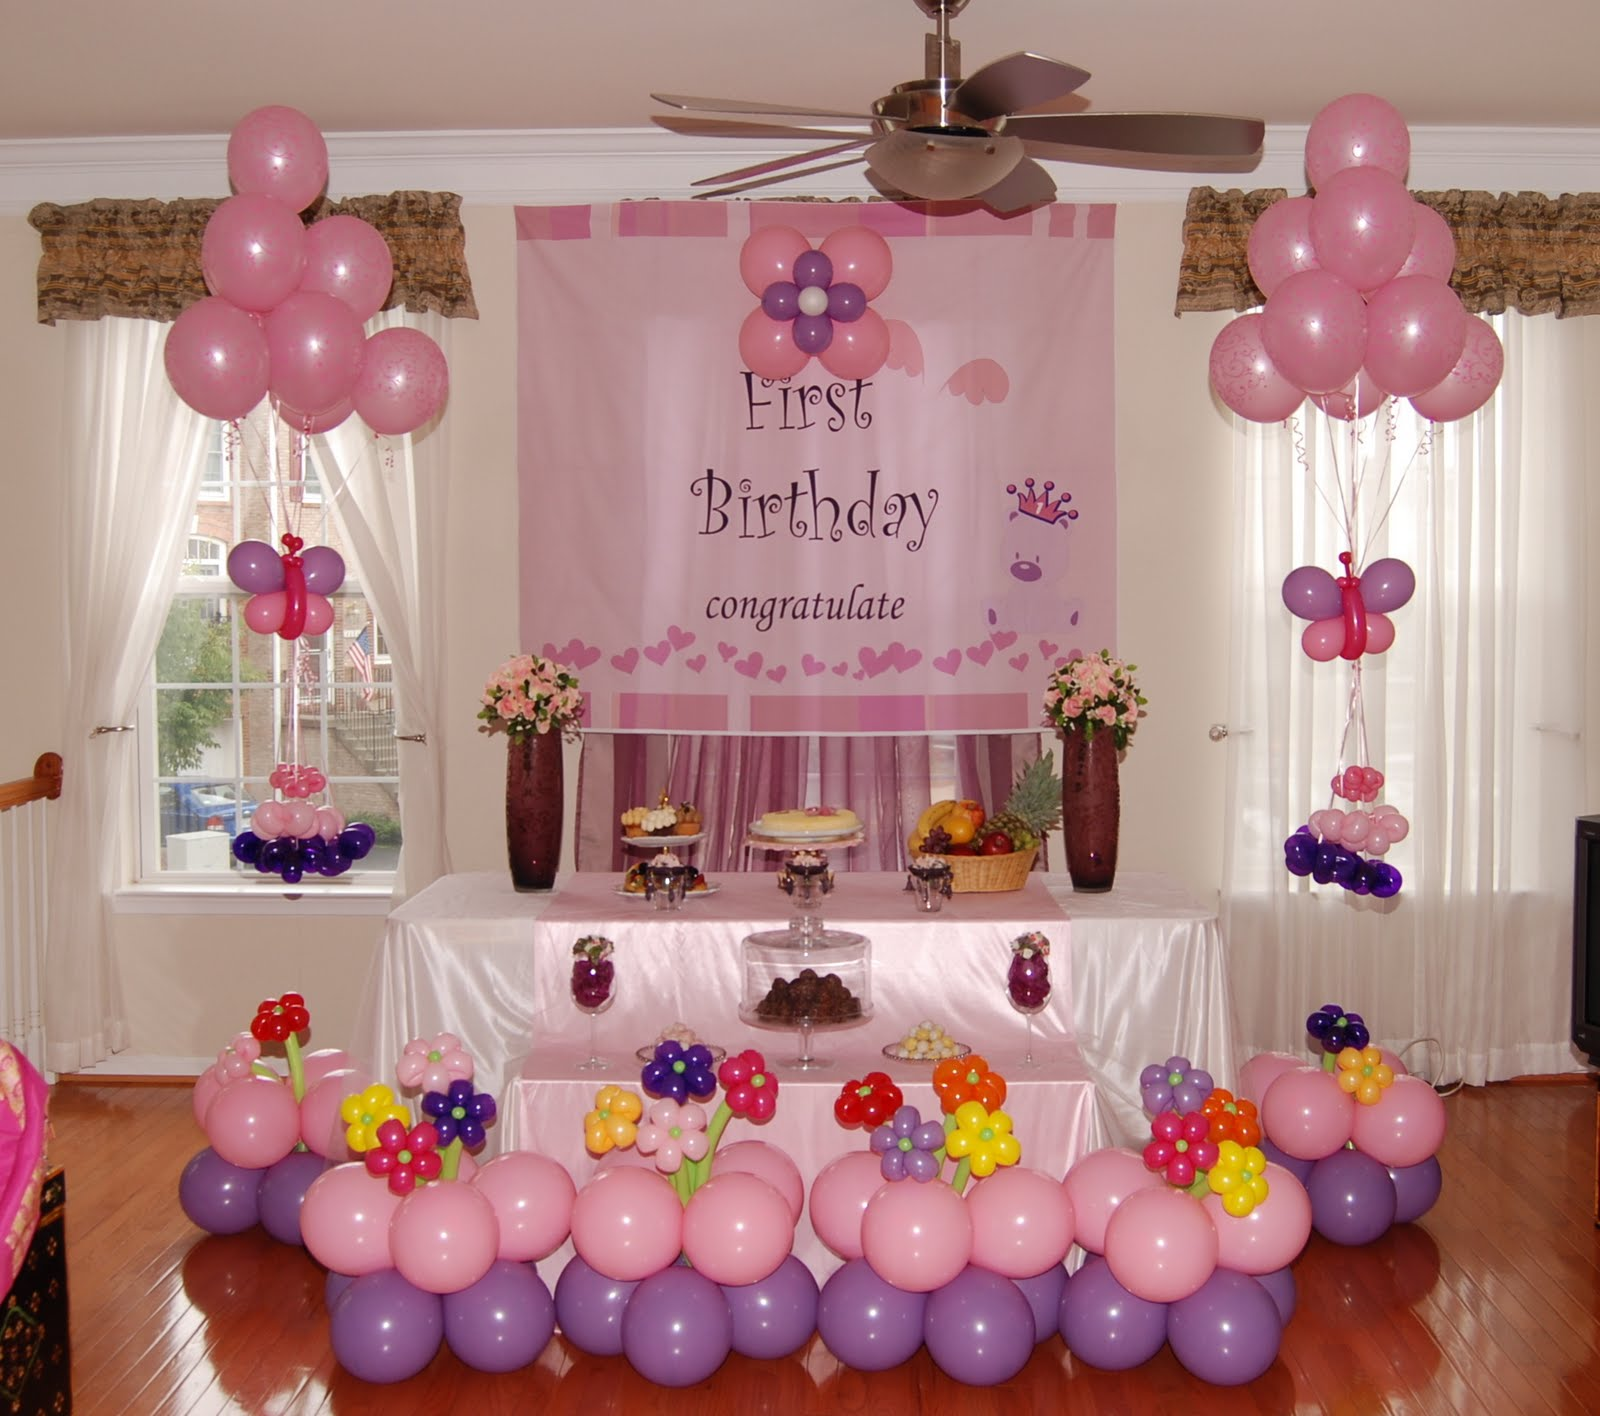 How to Create a Birthday Party Checklist | Great Party Ideas